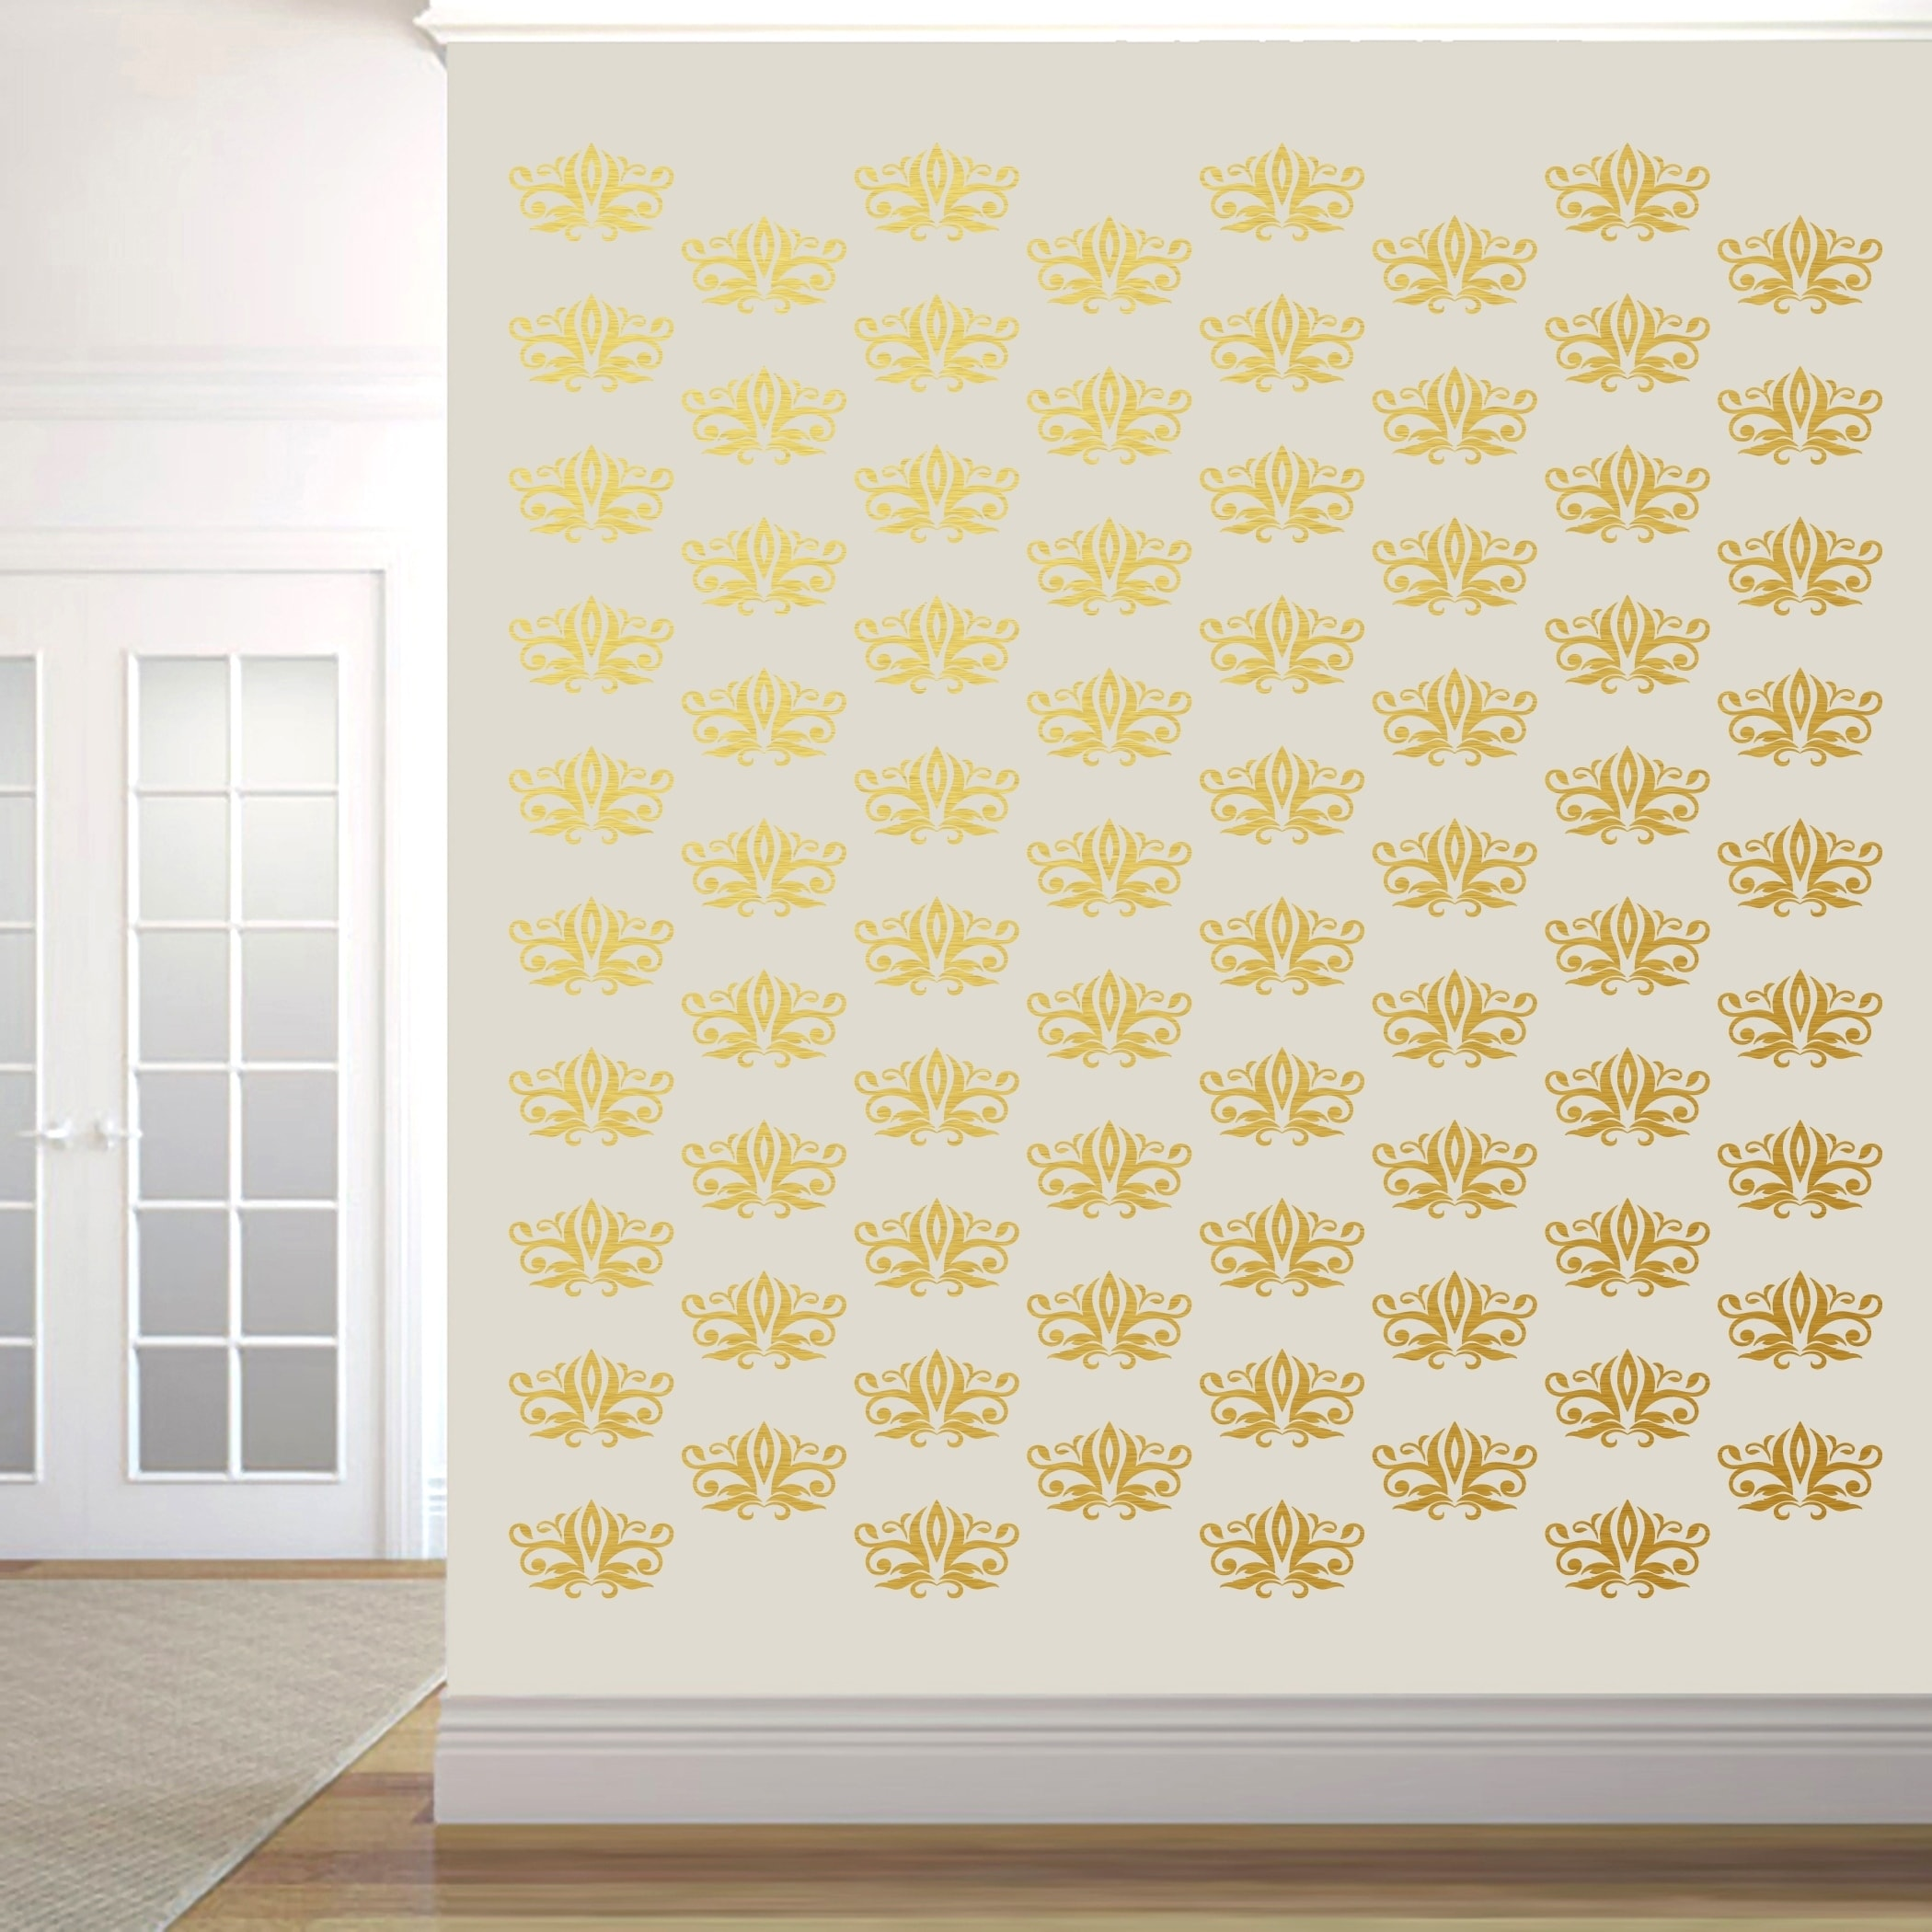 Beautiful Damask Wall Art Image Collection - Wall Art Collections ...